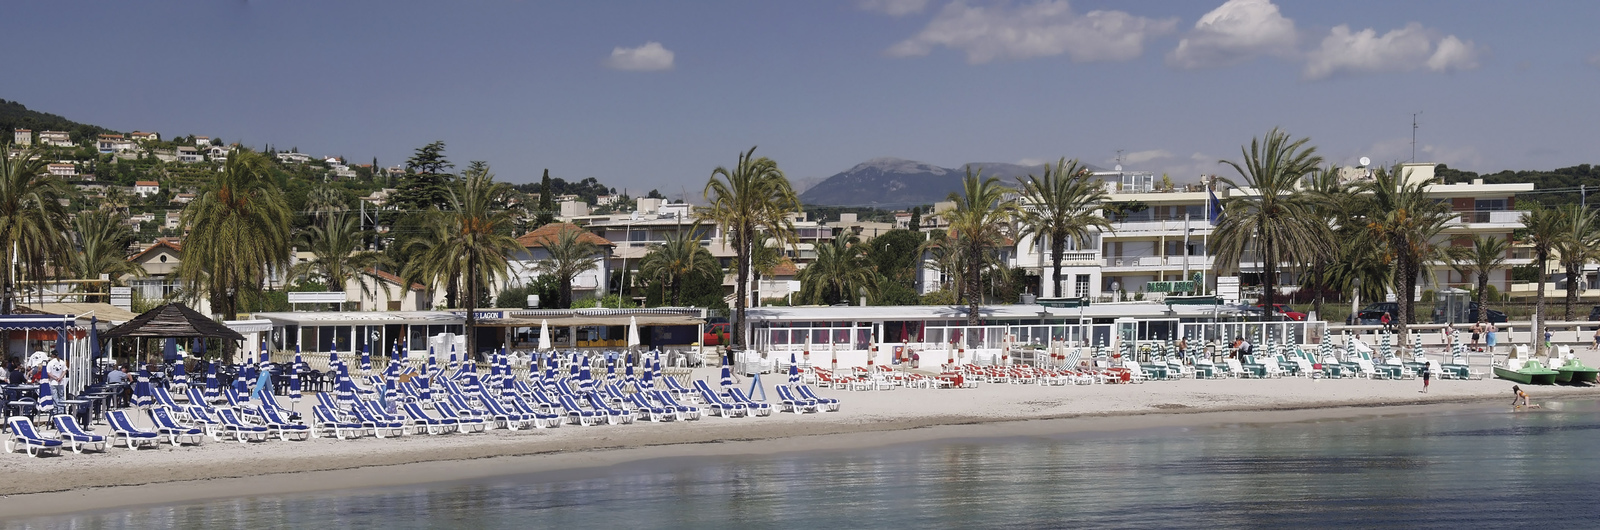 juan les pins city header